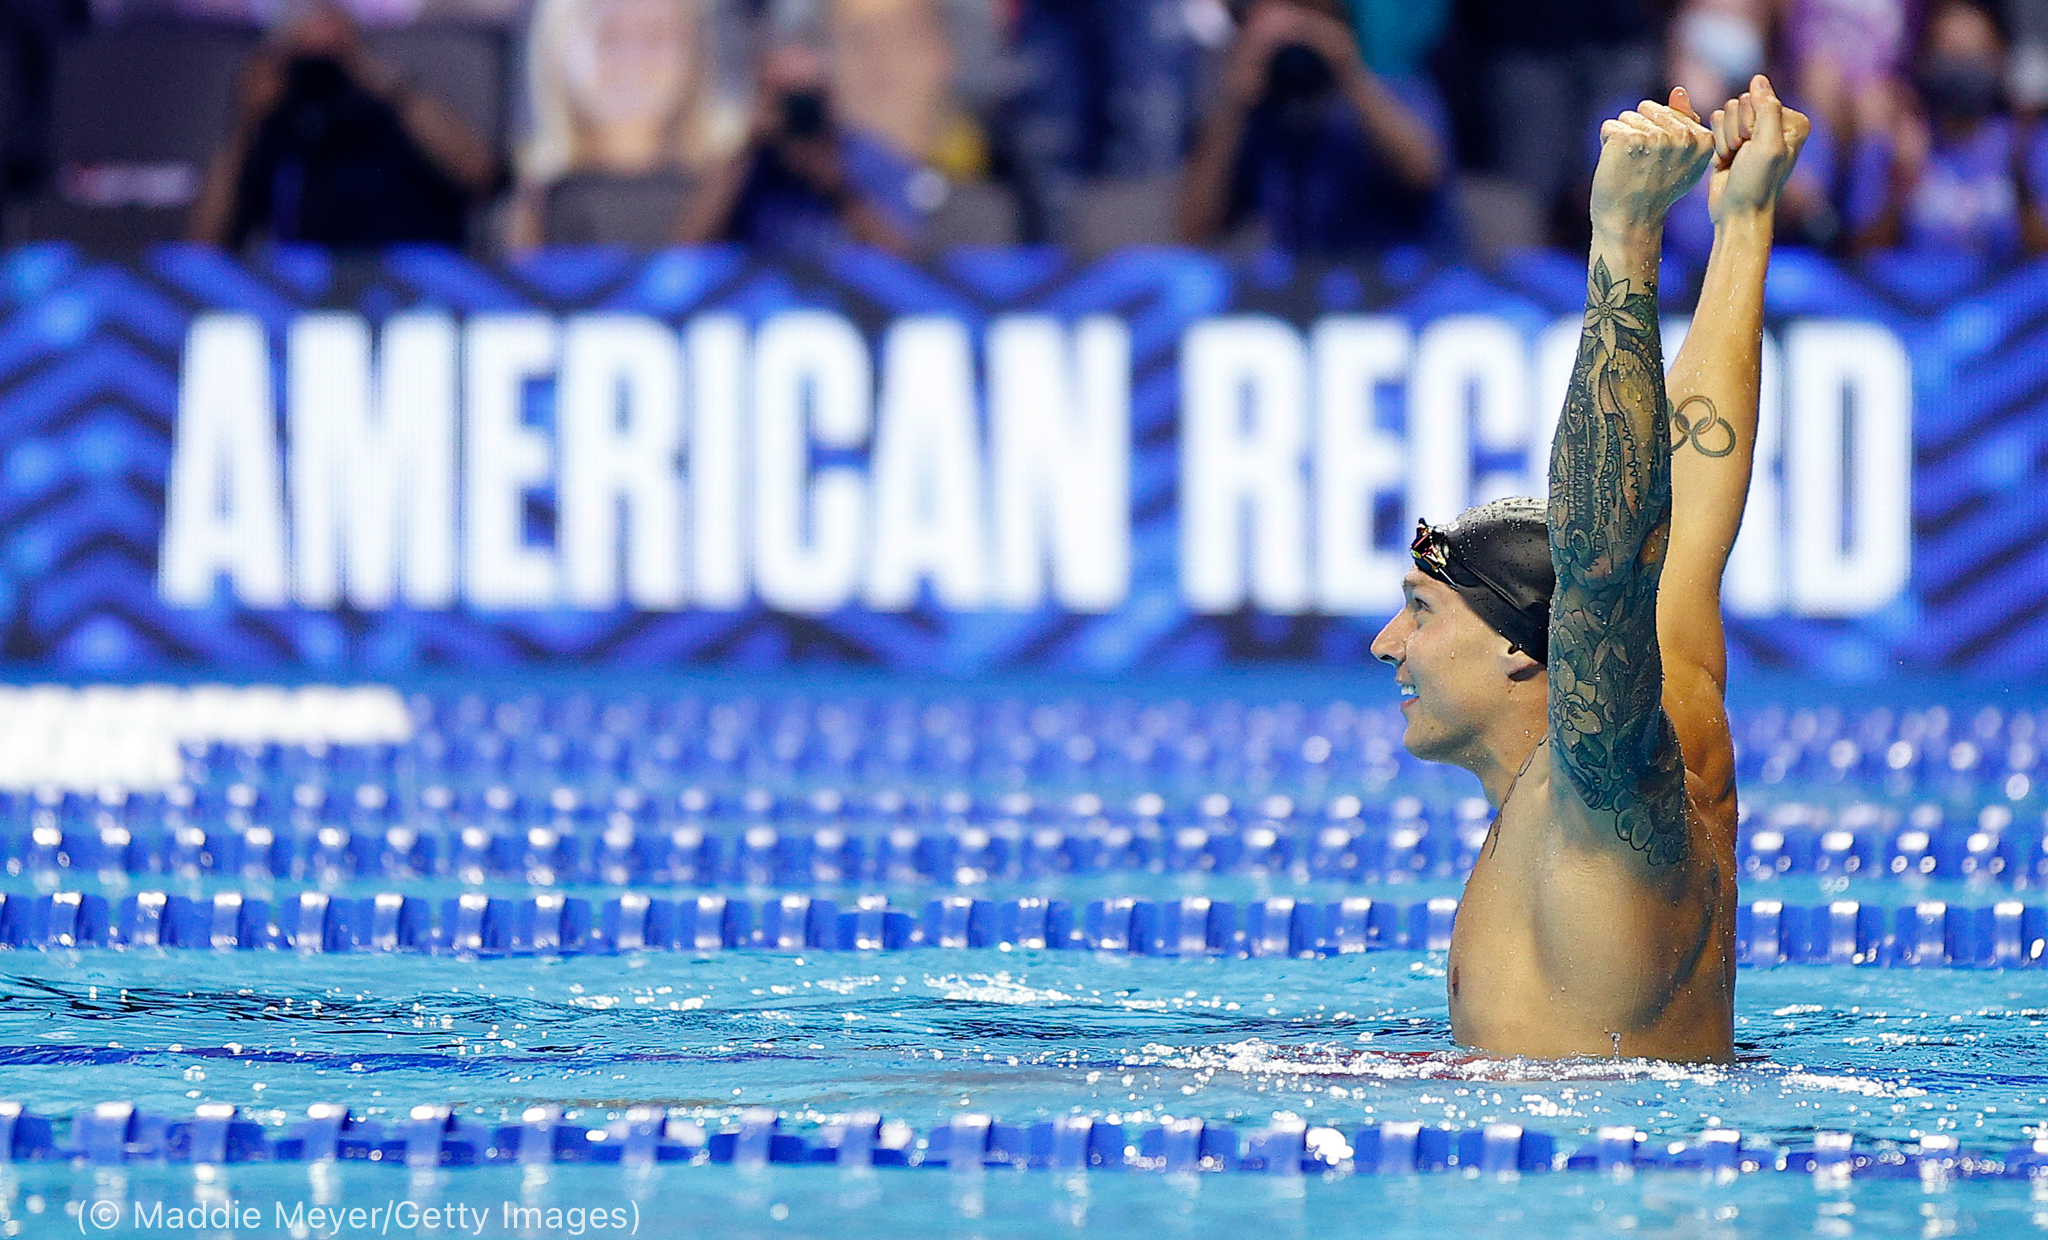 Male swimmer holding arms up in pool (© Maddie Meyer/Getty Images)